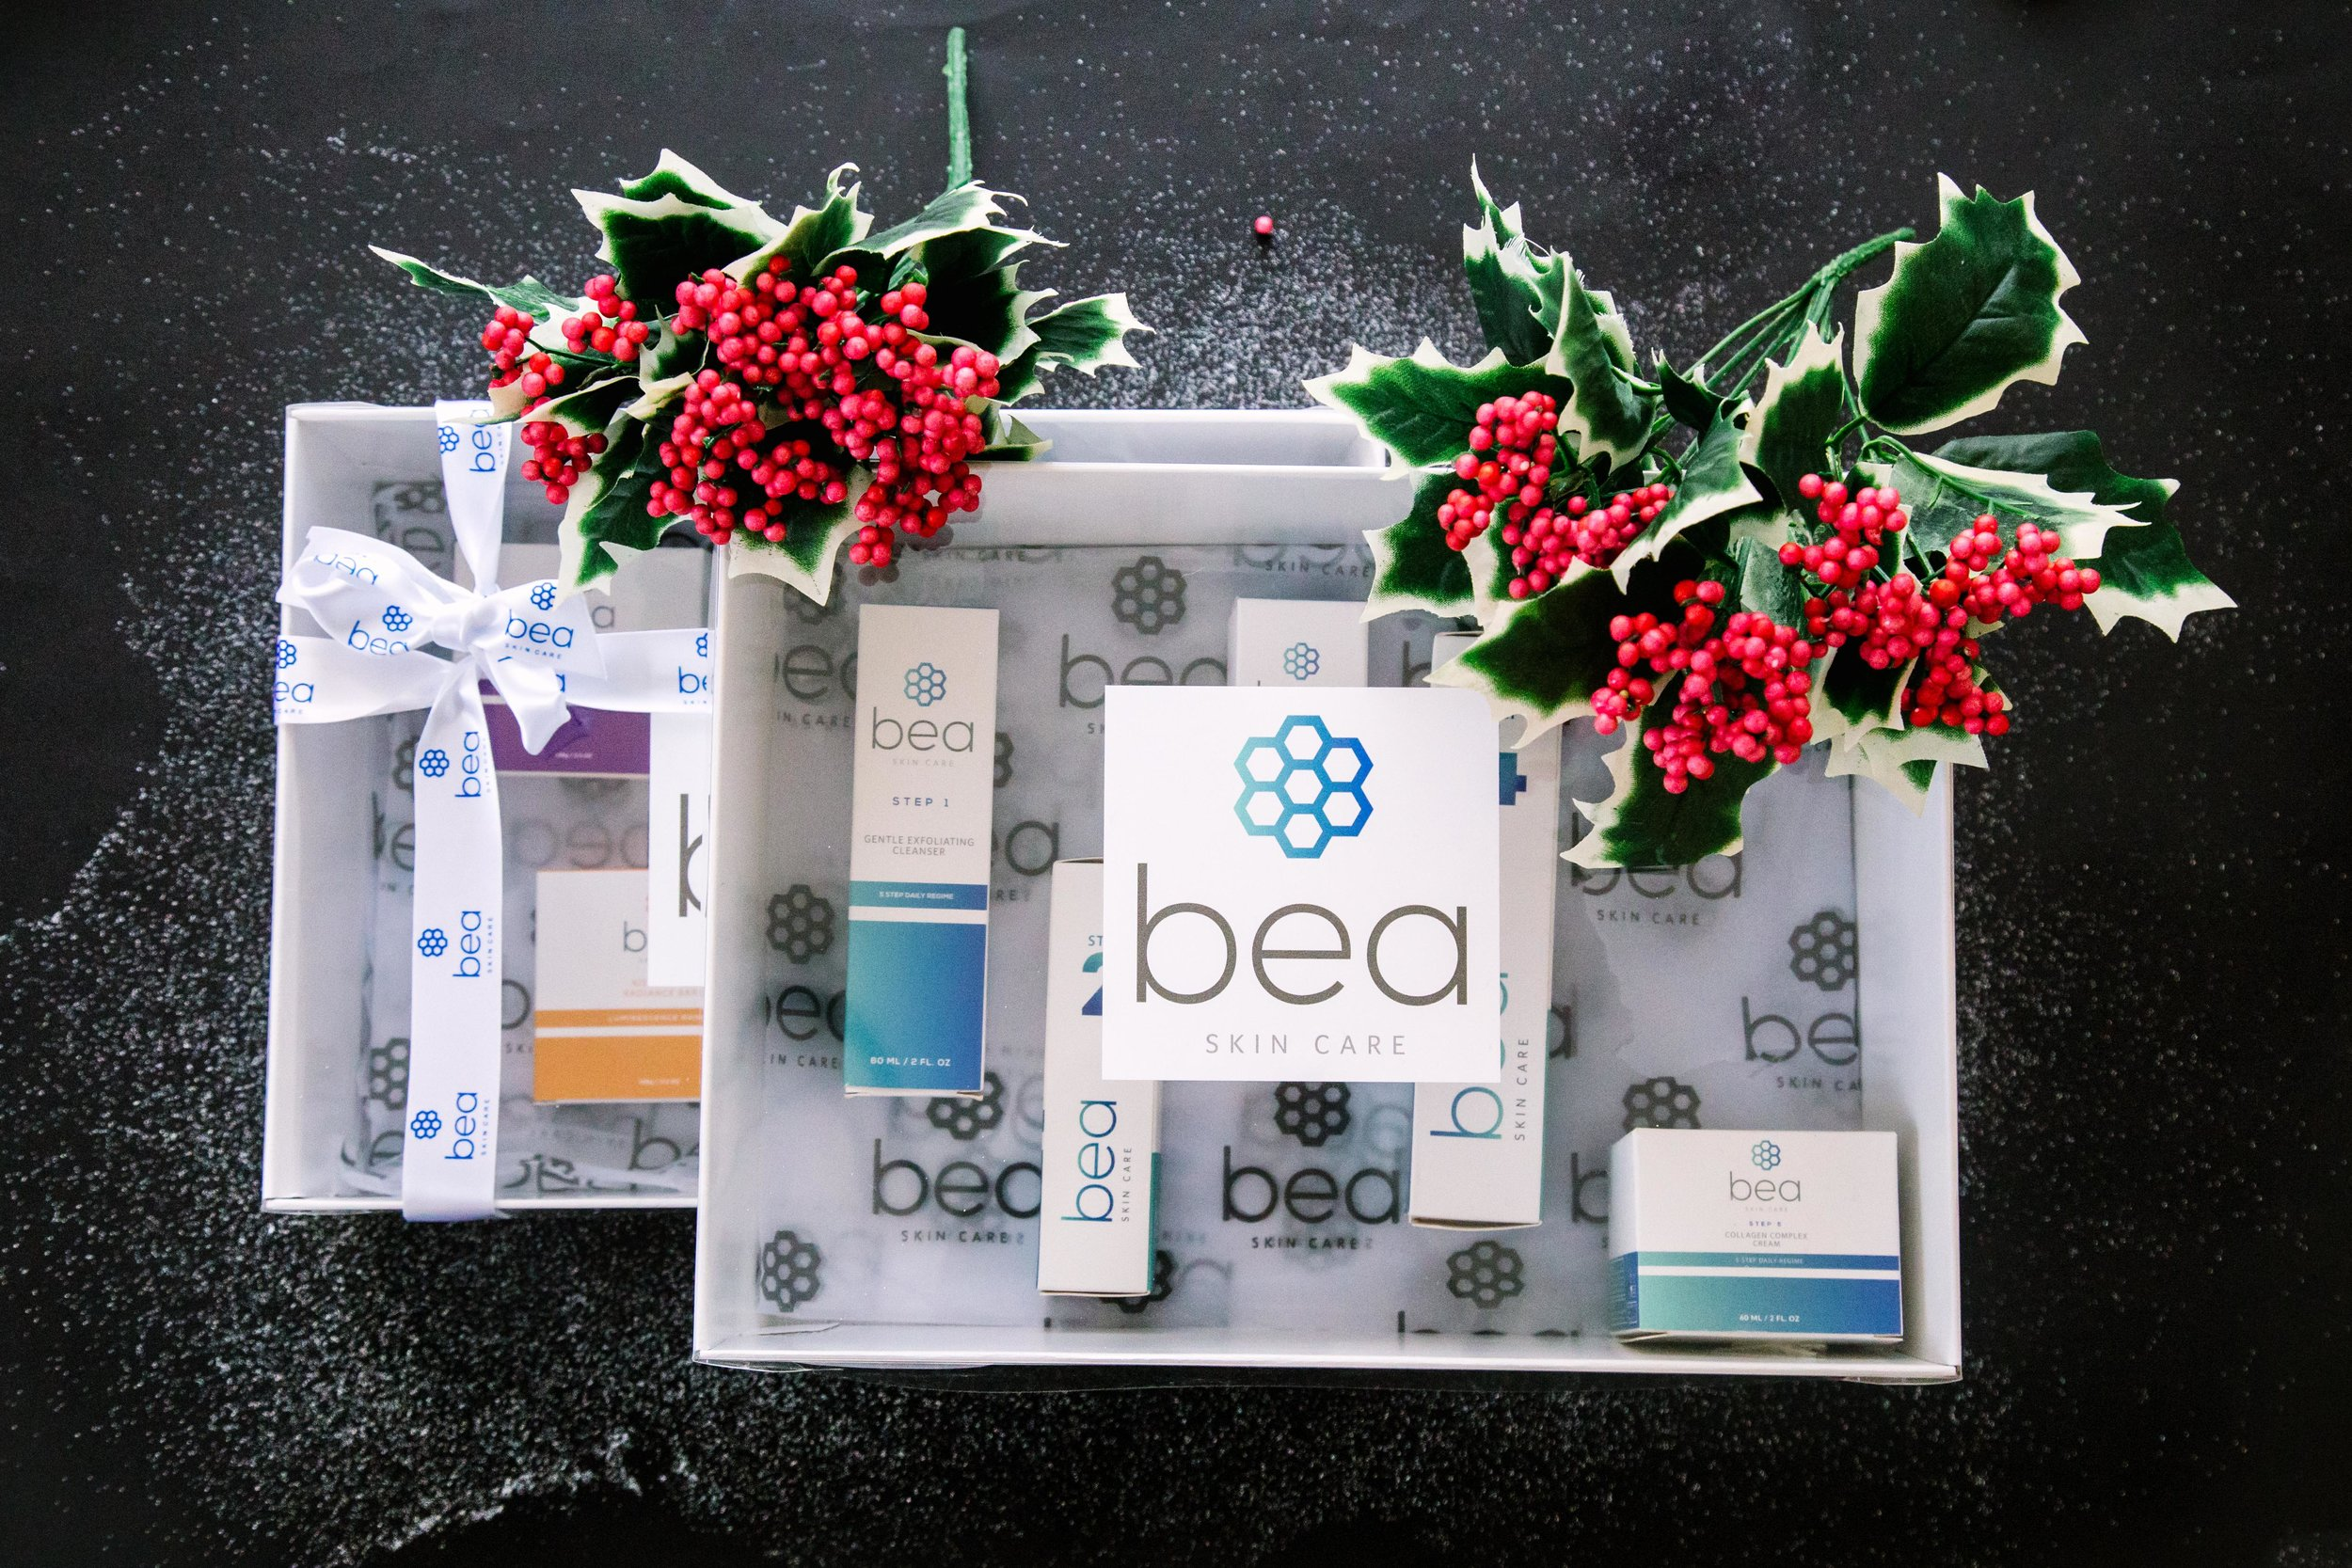 Bea_skin_care_seasonal_Christmas-2.jpg